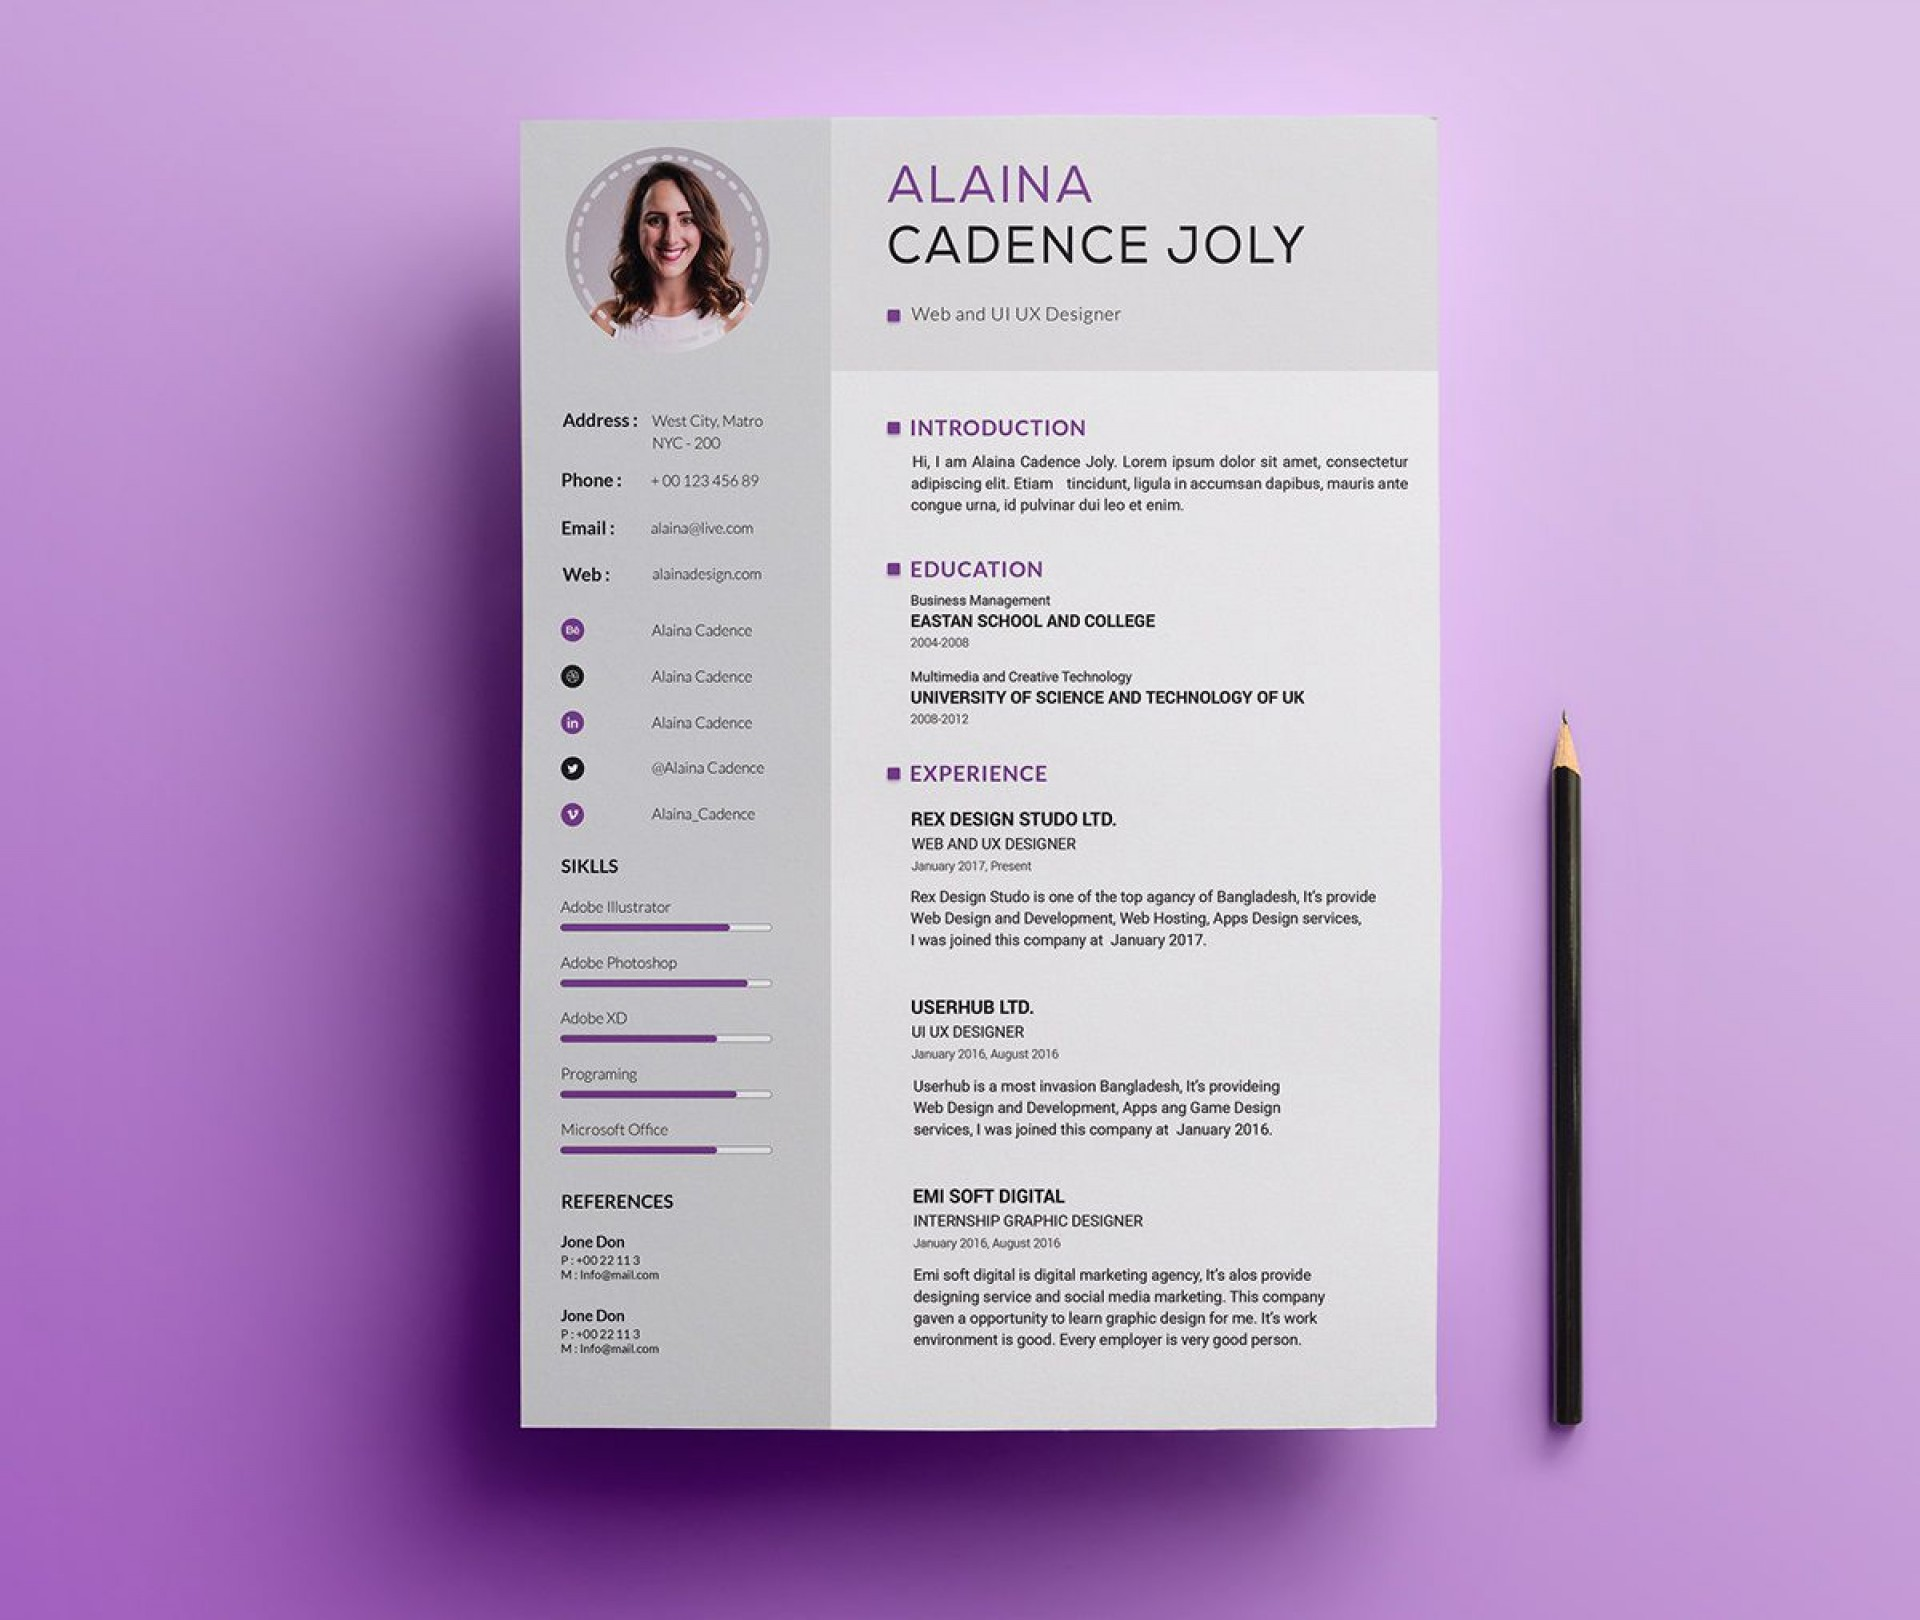 005 Impressive Professional Resume Template 2018 Free Download Idea 1920